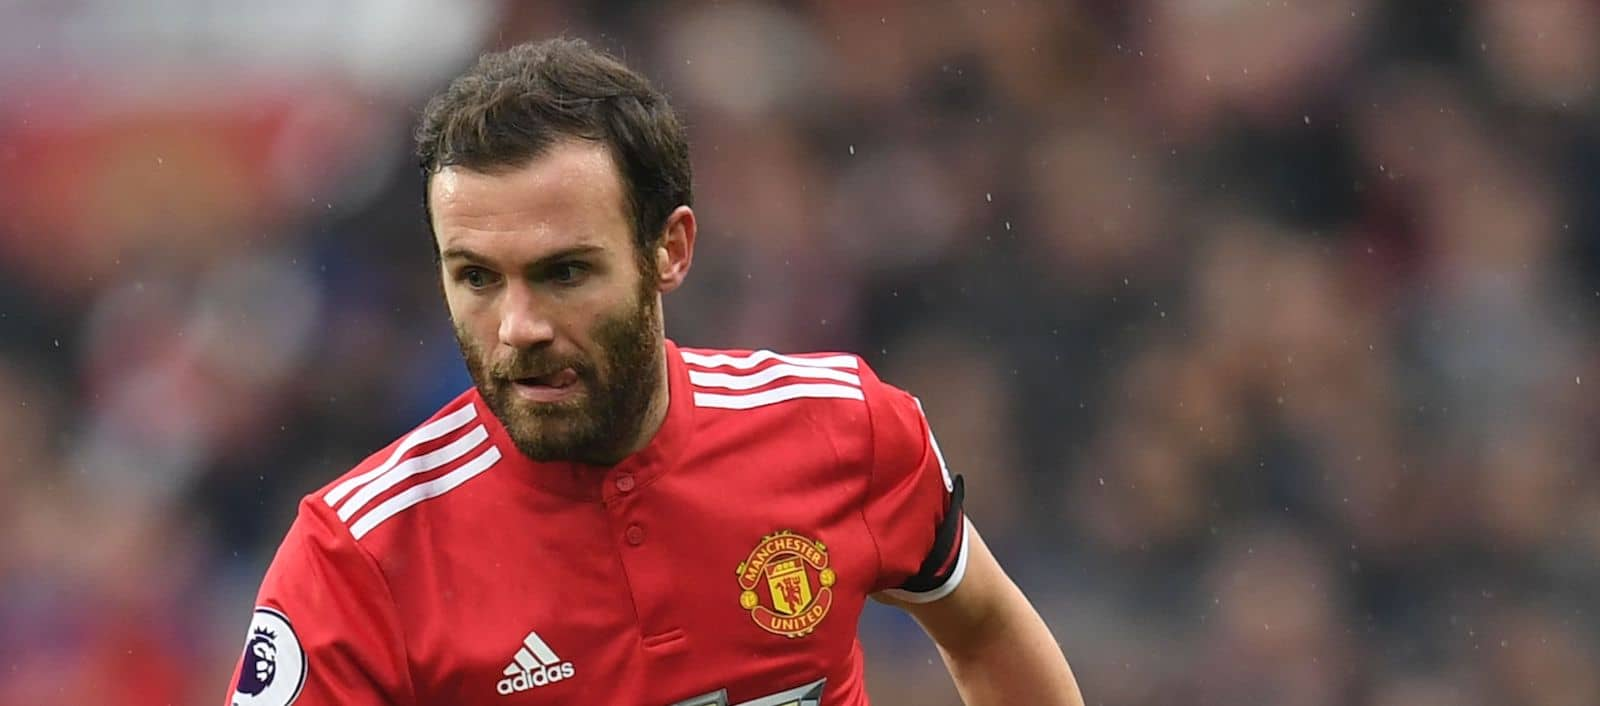 Juan Mata helps Manchester United kit staff with washing after games – report